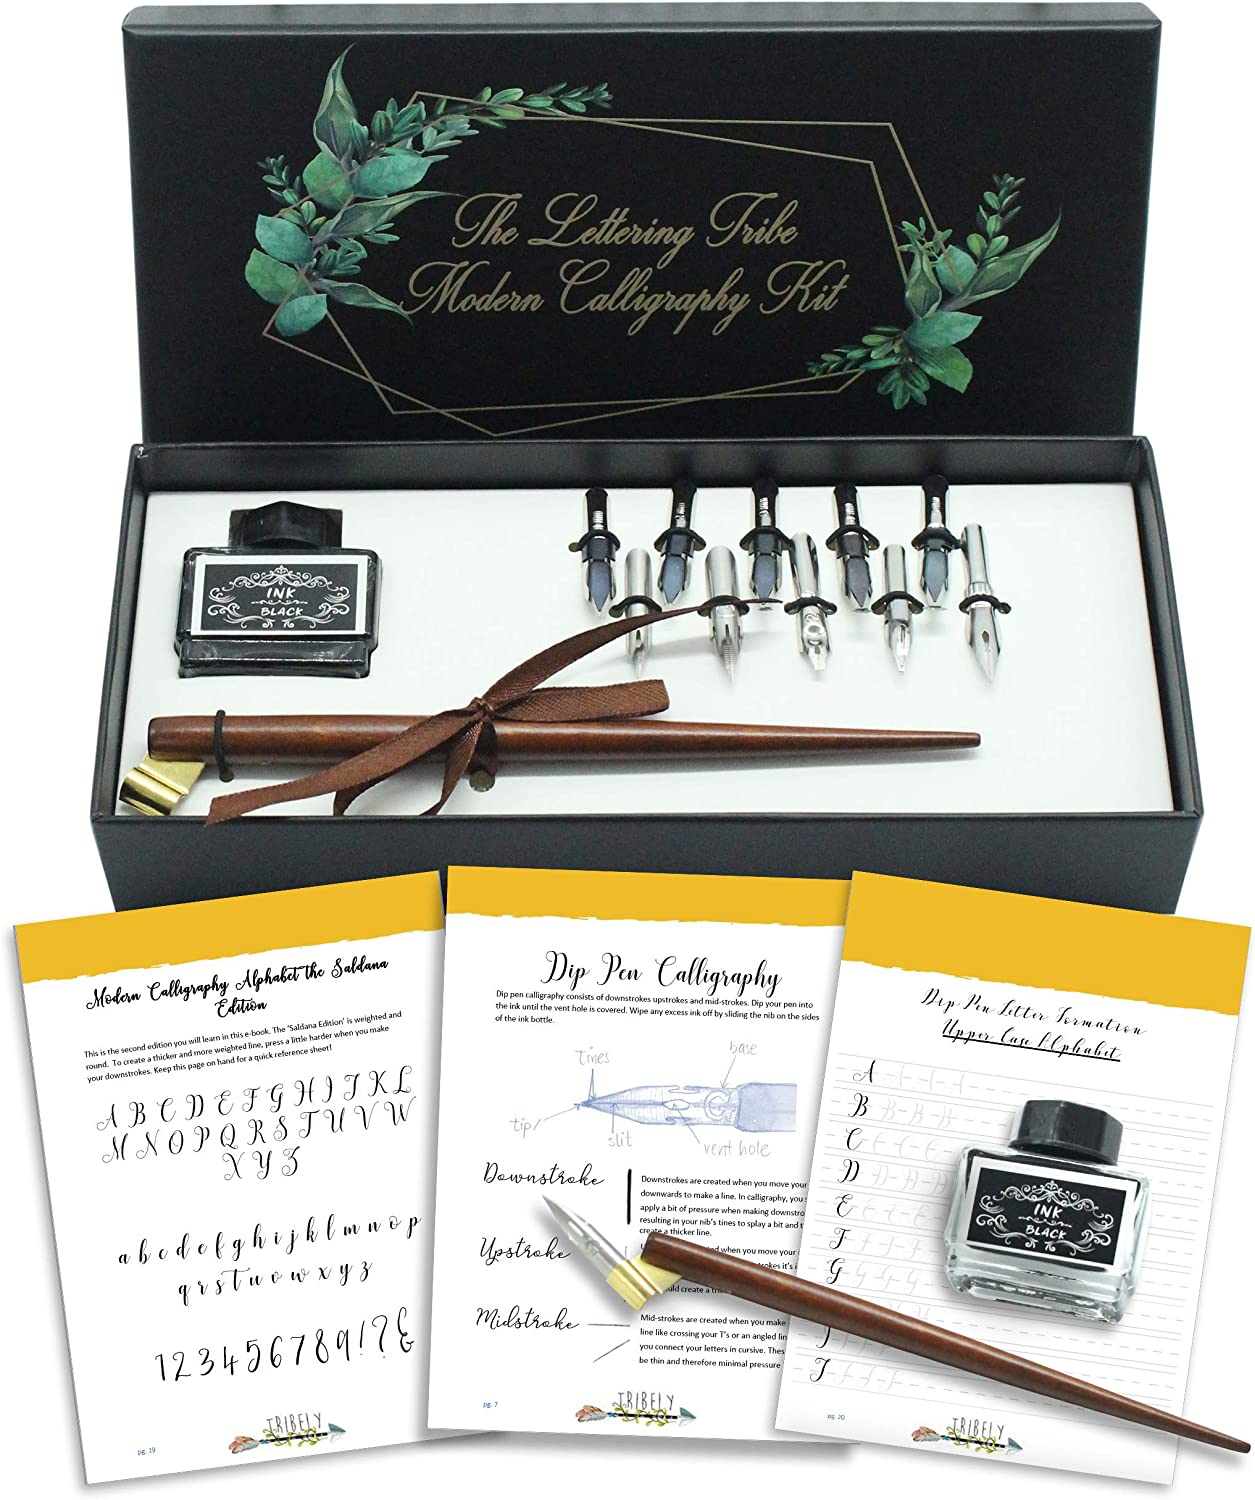 Calligraphy Starter Kit Complete Oblique Pointed Pen Calligraphy Gift Set Learn Modern Dip Pen Calligraphy